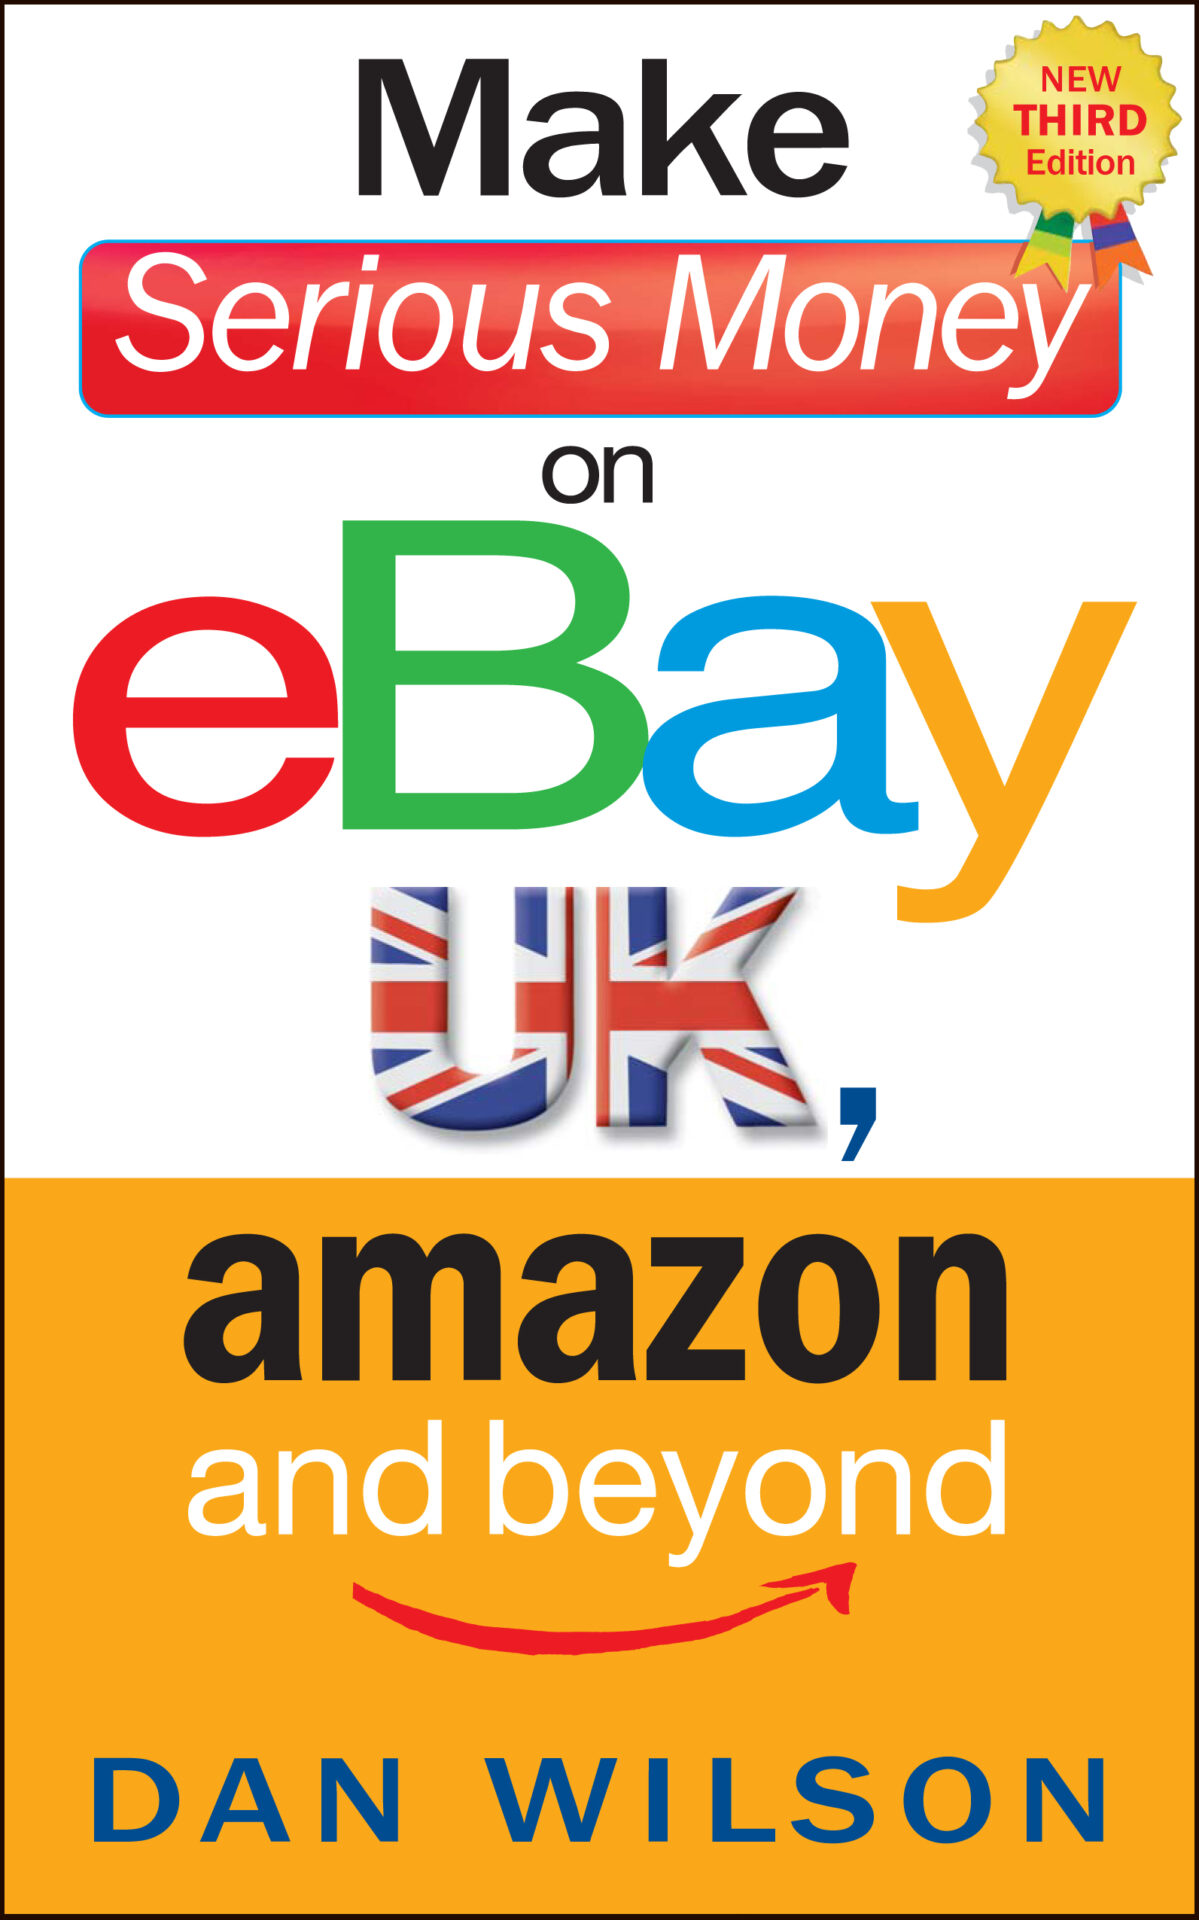 Amazon Uk Books Published Today Make Serious Money On Ebay Uk Amazon And Beyond